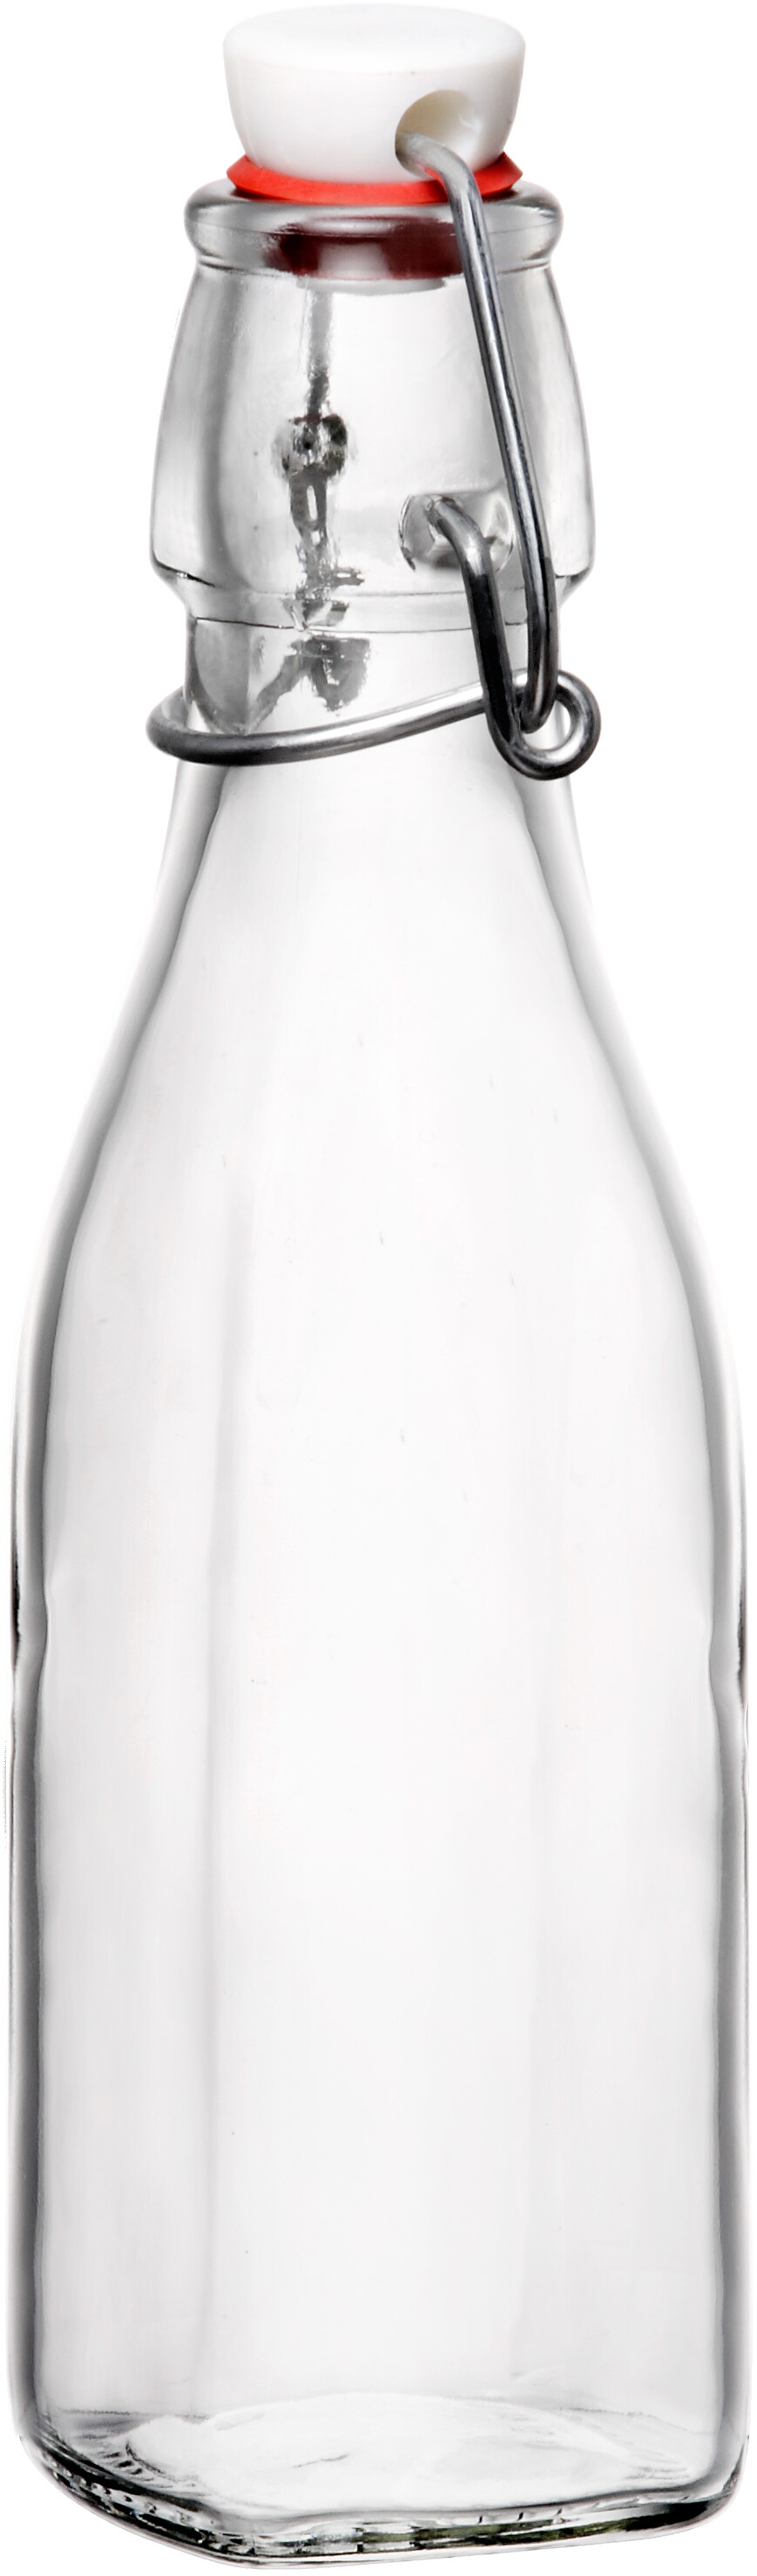 Bormioli Rocco Swing Top Glass Bottle, 8 Ounce